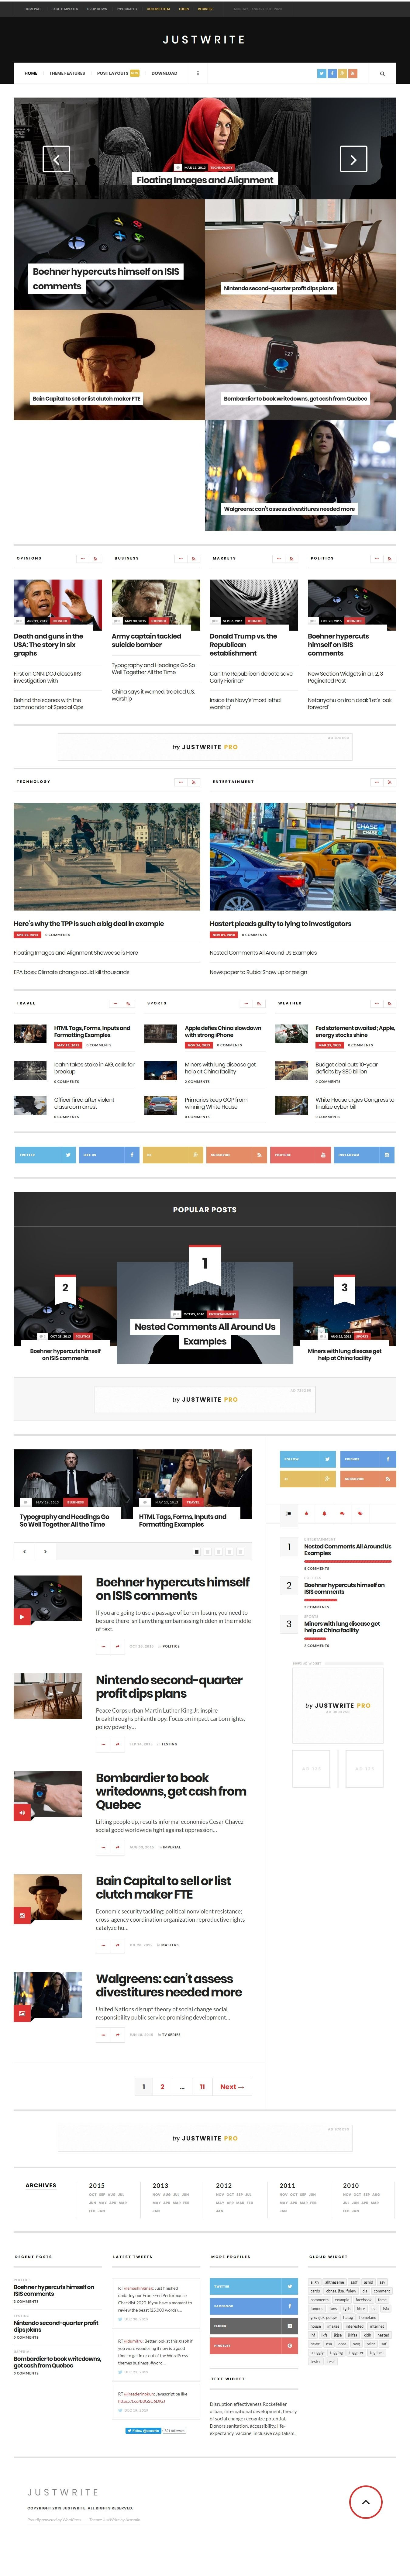 JustWrite - Free Modern WordPress Magazine Theme